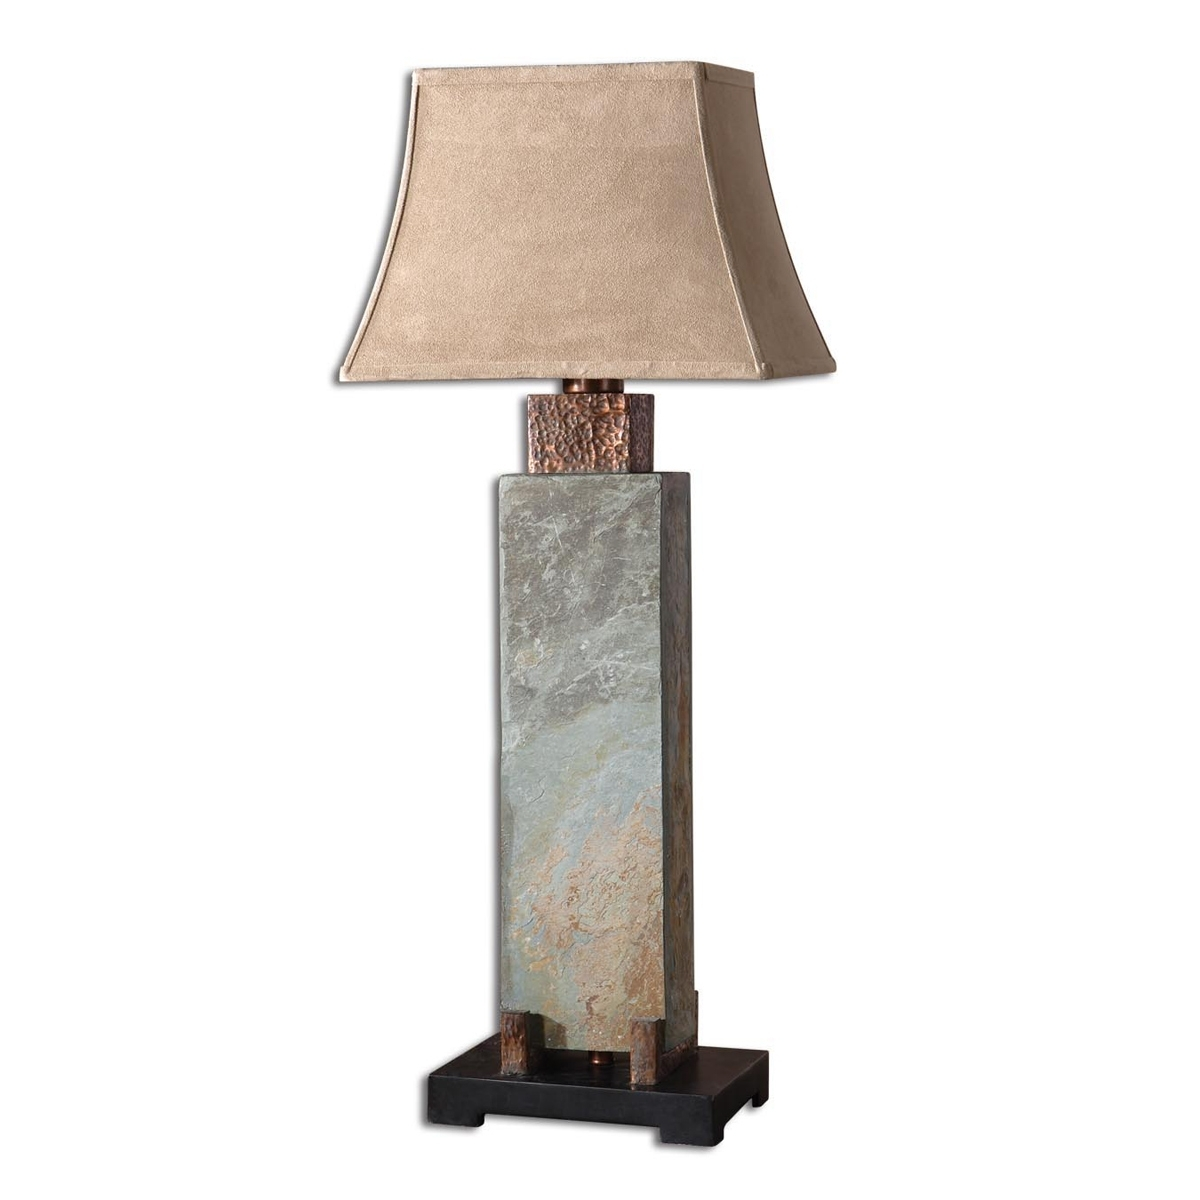 Creative Decoration Rustic Table Lamps For Living Room Rustic Table Regarding Tall Table Lamps For Living Room (View 4 of 15)